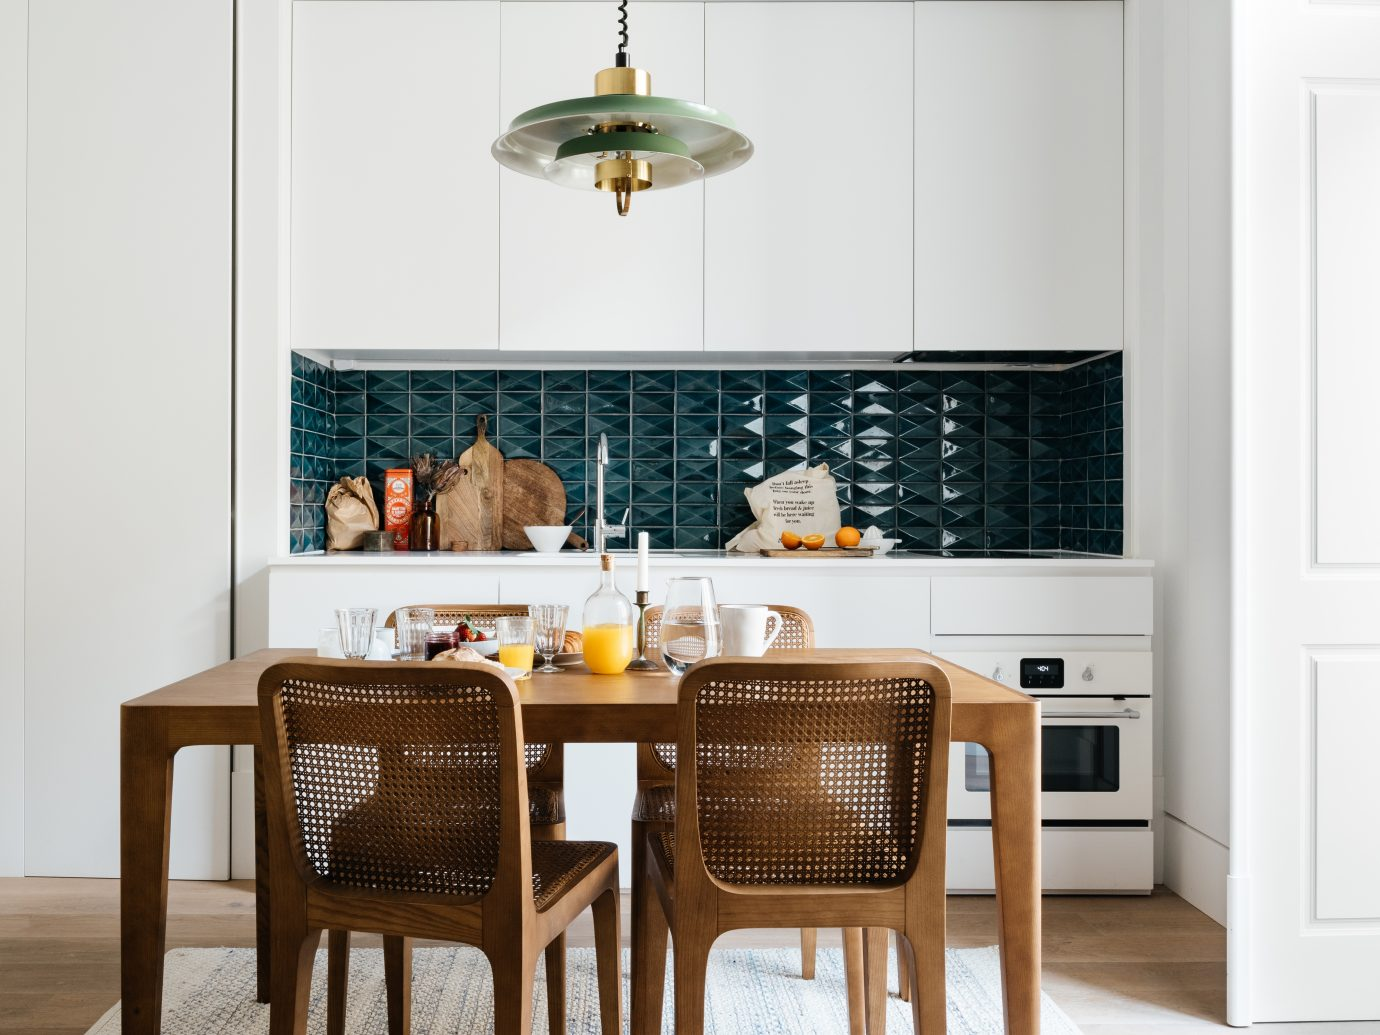 Kitchen interior with basket chairs, a set breakfast on the table, and teal tiling with white cabinets